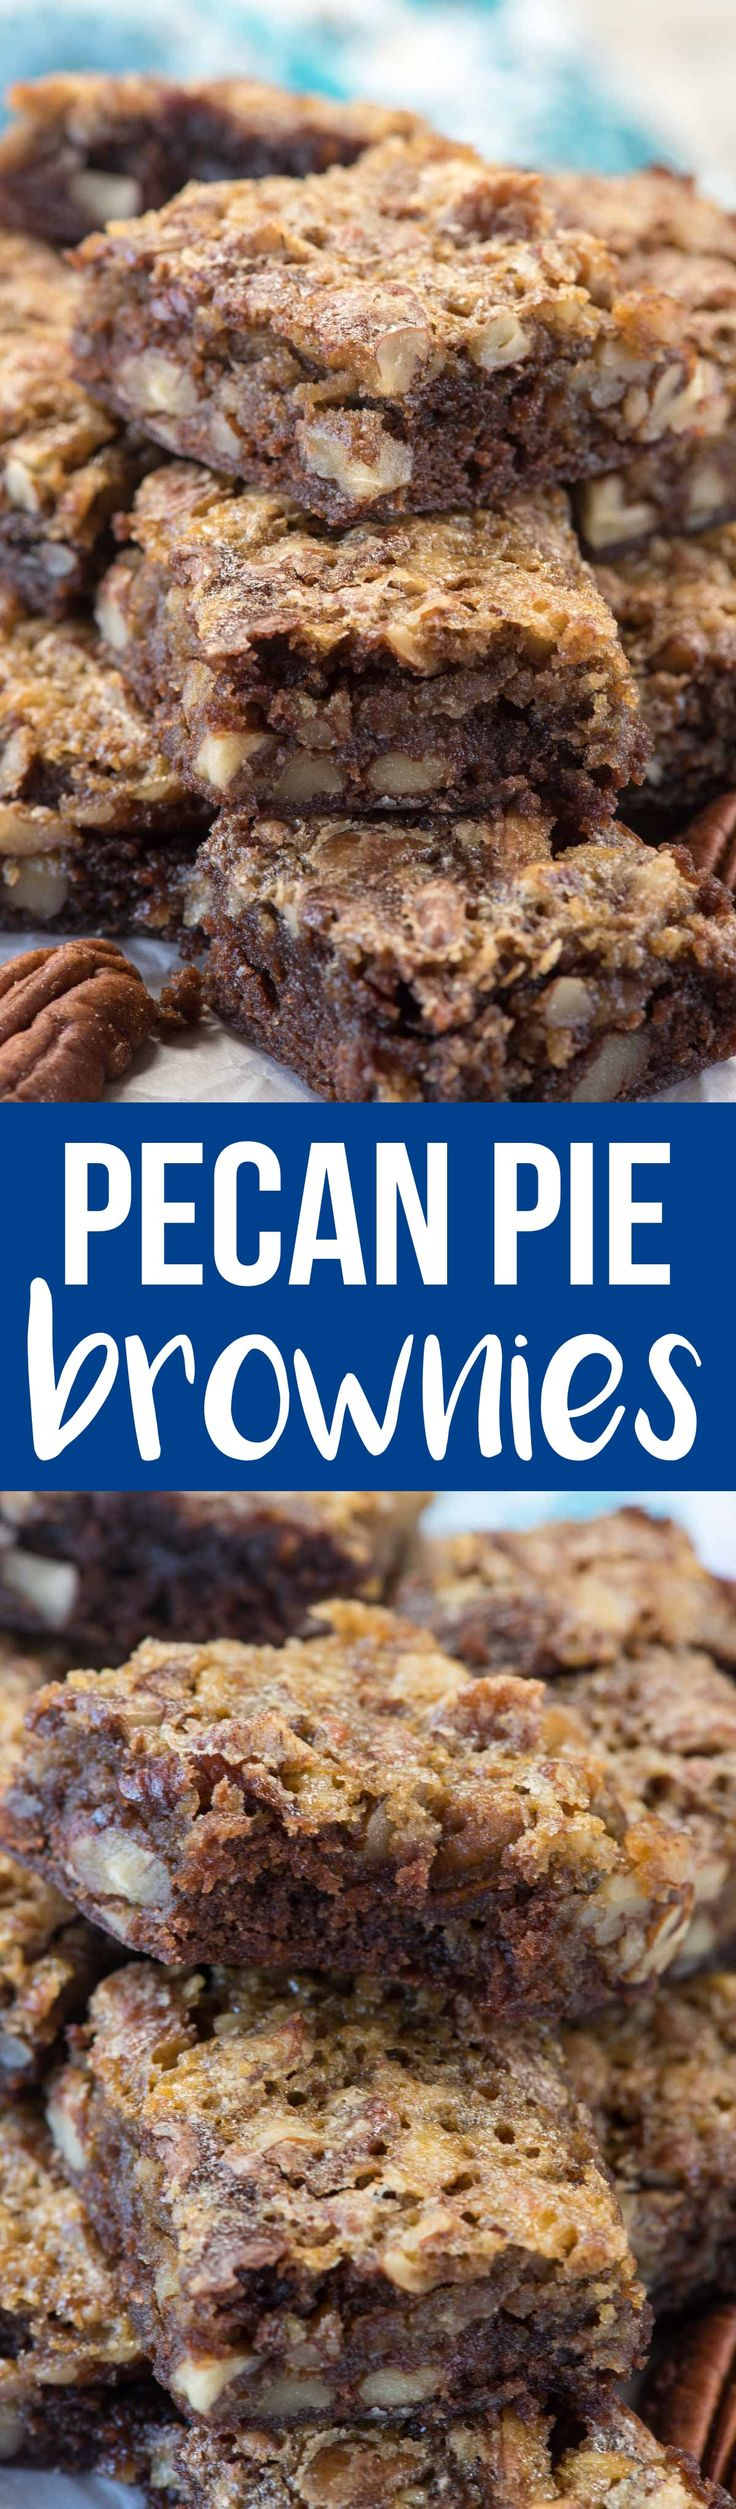 Pecan Pie Brownies are an easy way to have your pecan pie and your brownies too! These are great for a party or just because you love gooey chocolate brownies and the perfect pecan pie! via @crazyforcrust